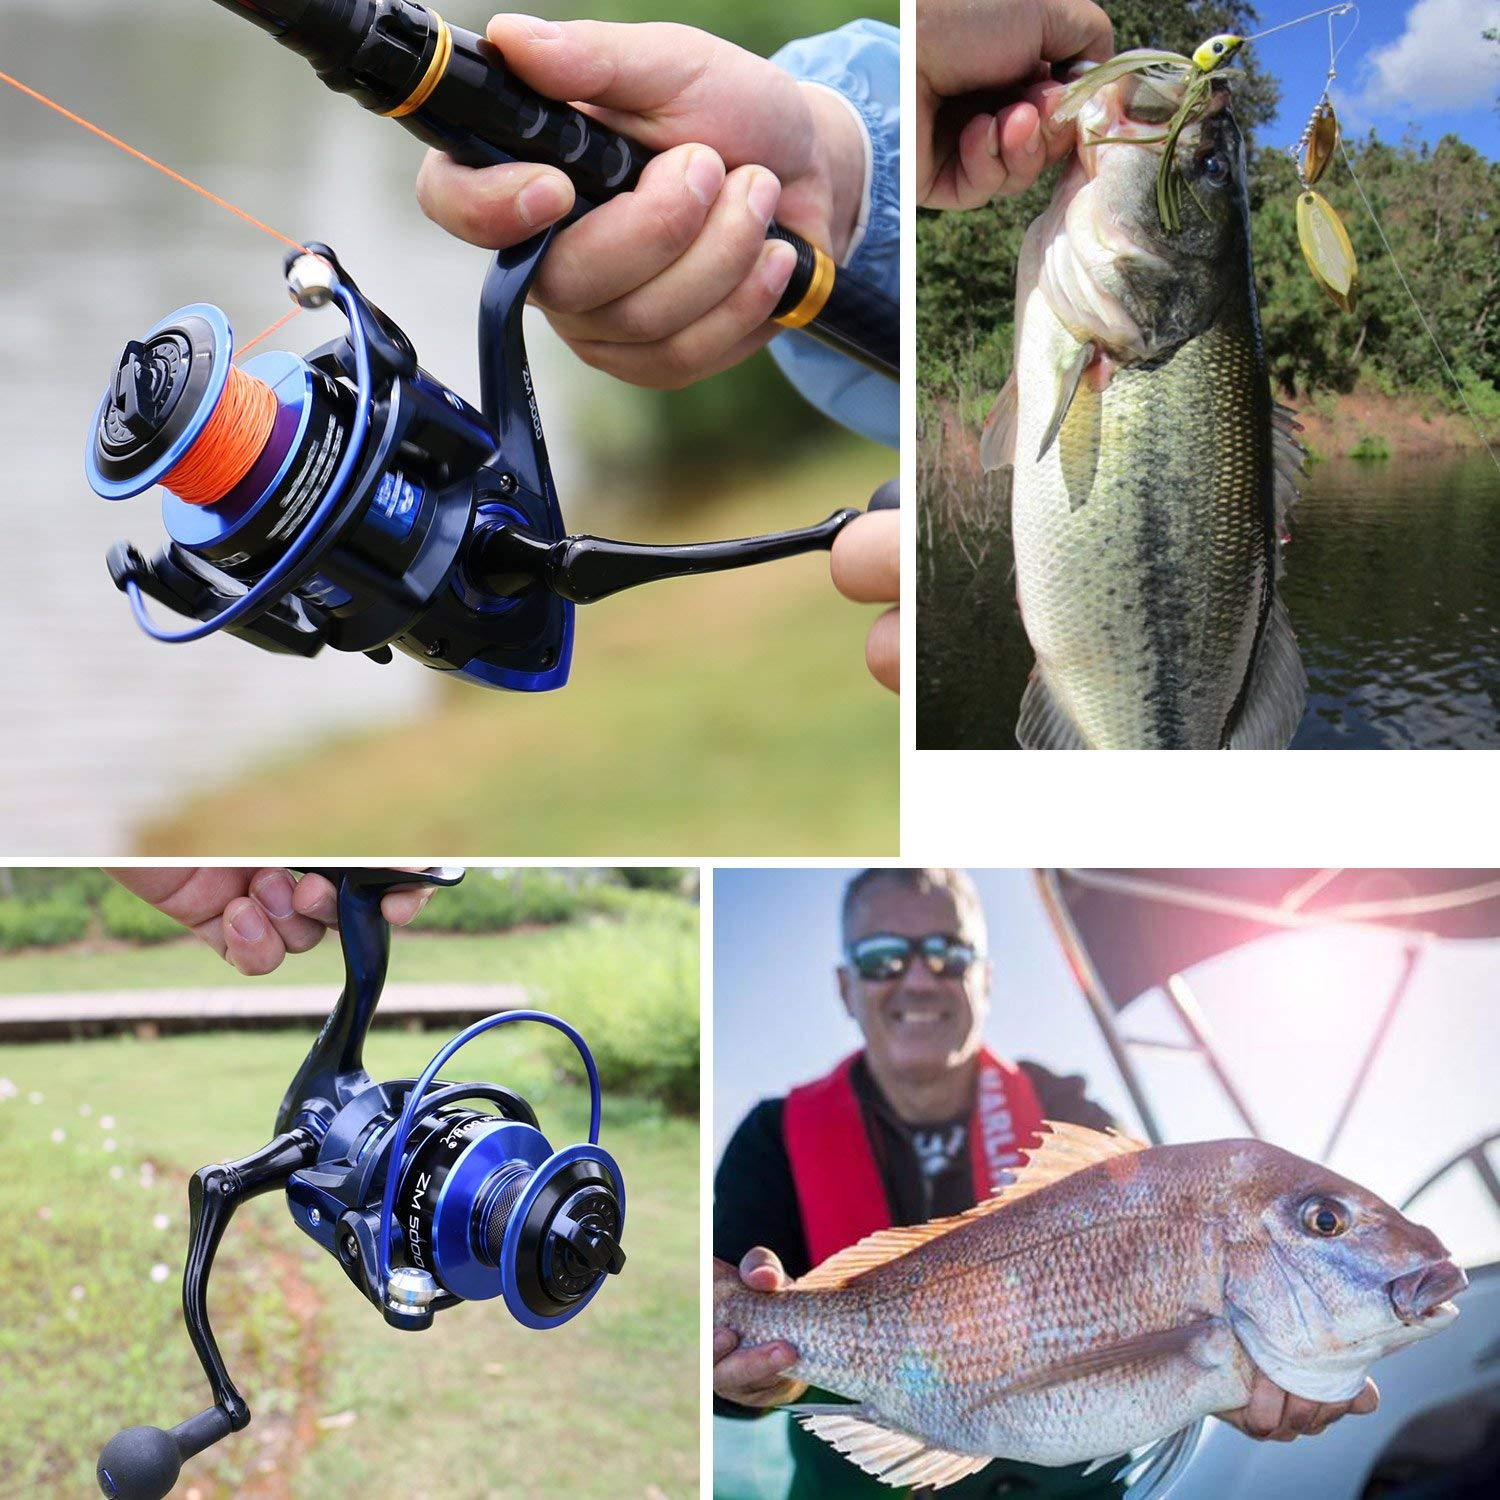 Sougayilang Telescopic Fishing Rod and Reel Combos with Lightweight 24-Ton Graphite Rod and Spinning reels